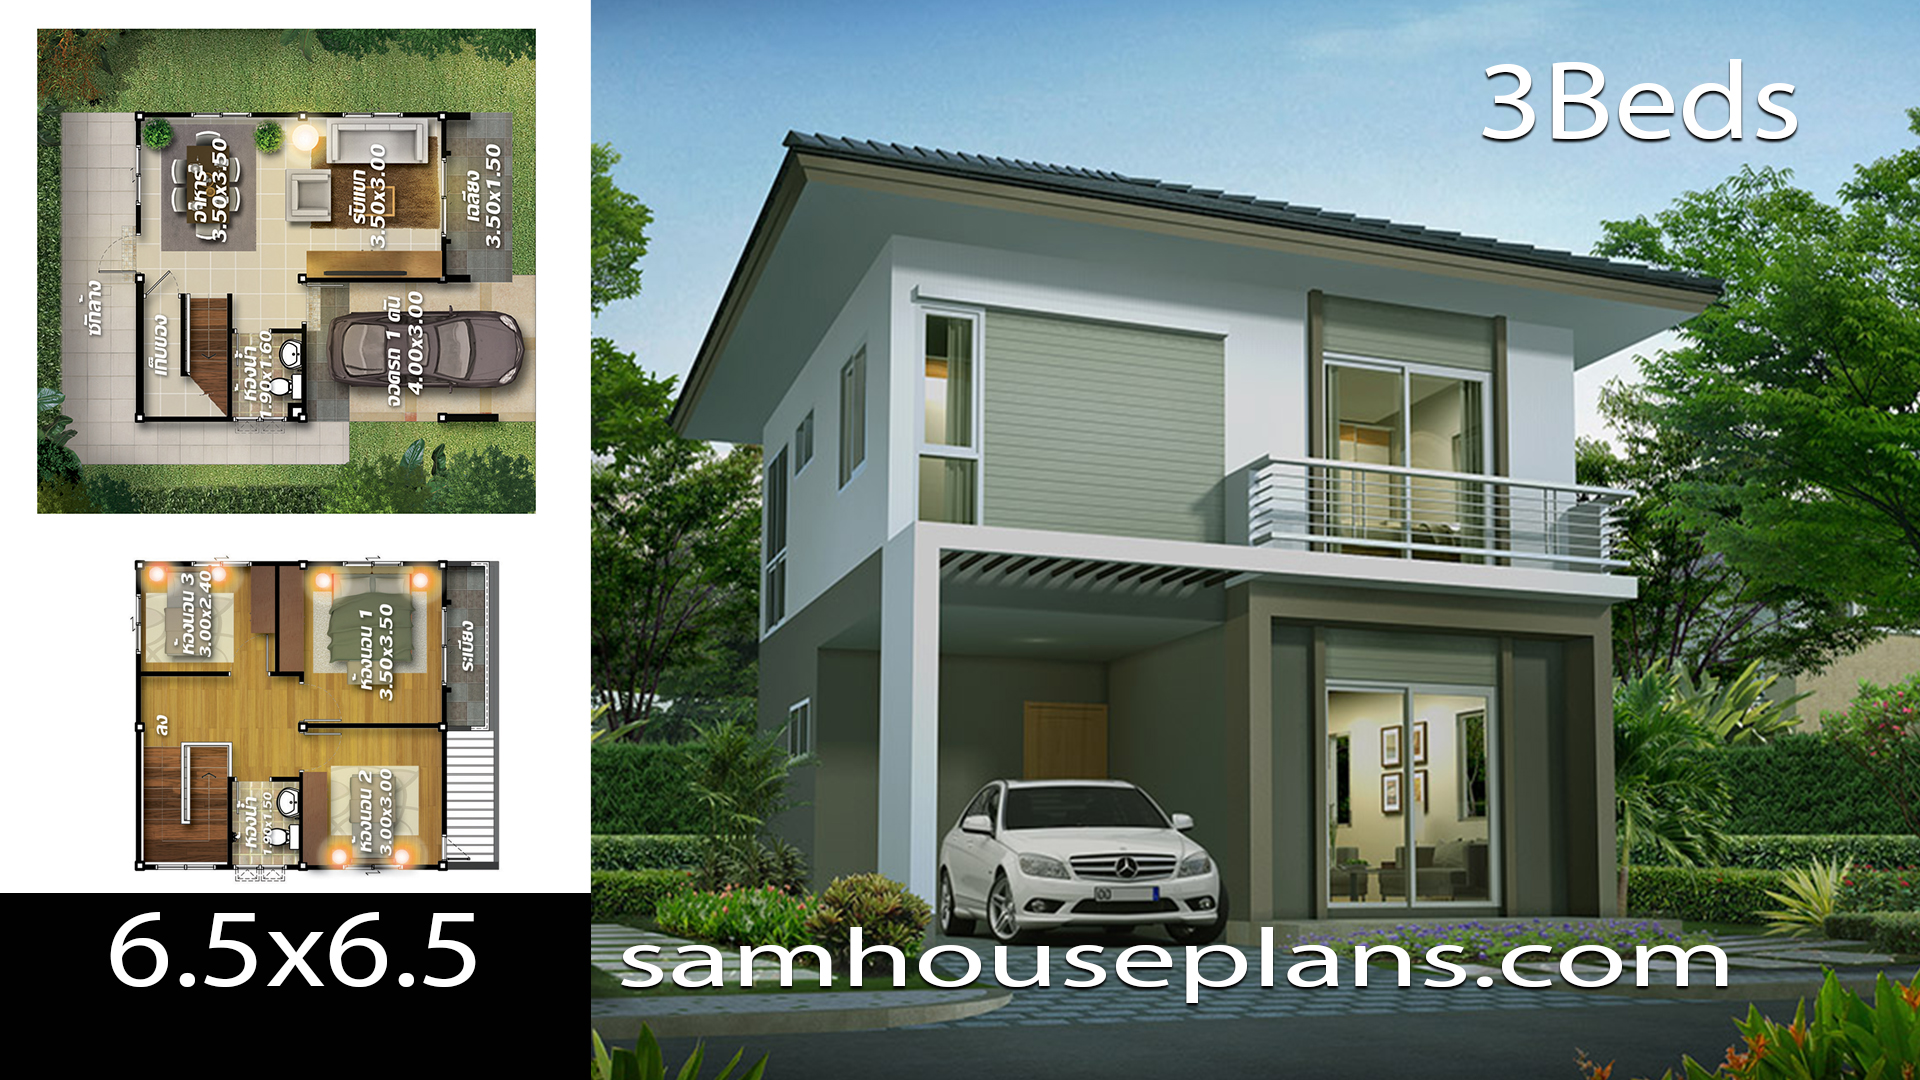 House Plans 6 5x6 5 With 3 Bedroom Samhouseplans,Different Ways To Hang Curtains Pictures